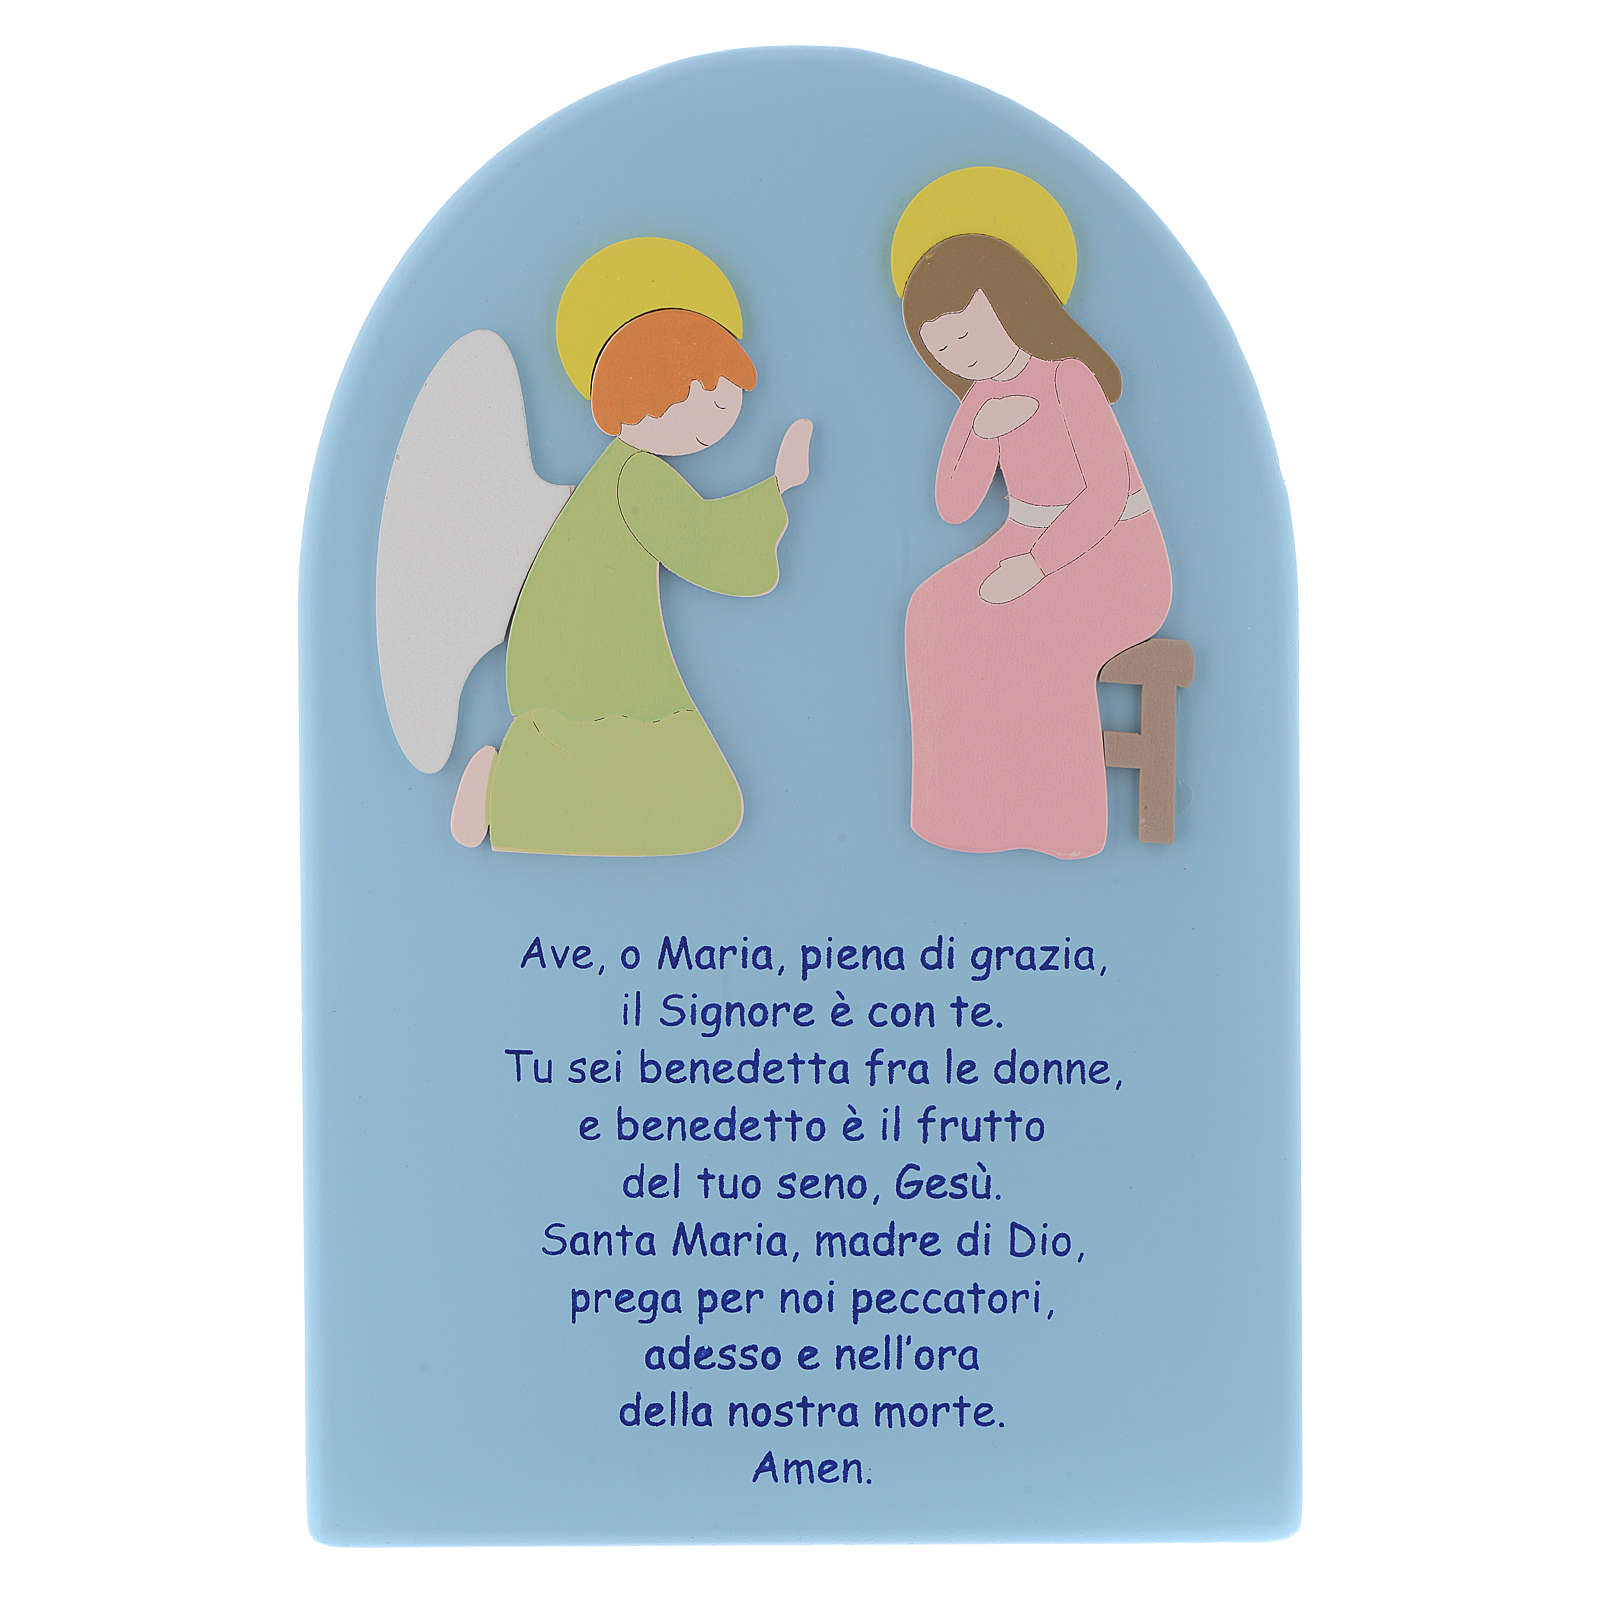 Annunciation shovel in light blue wood 25x15 cm with Hail Mary prayer in ITALIAN 4